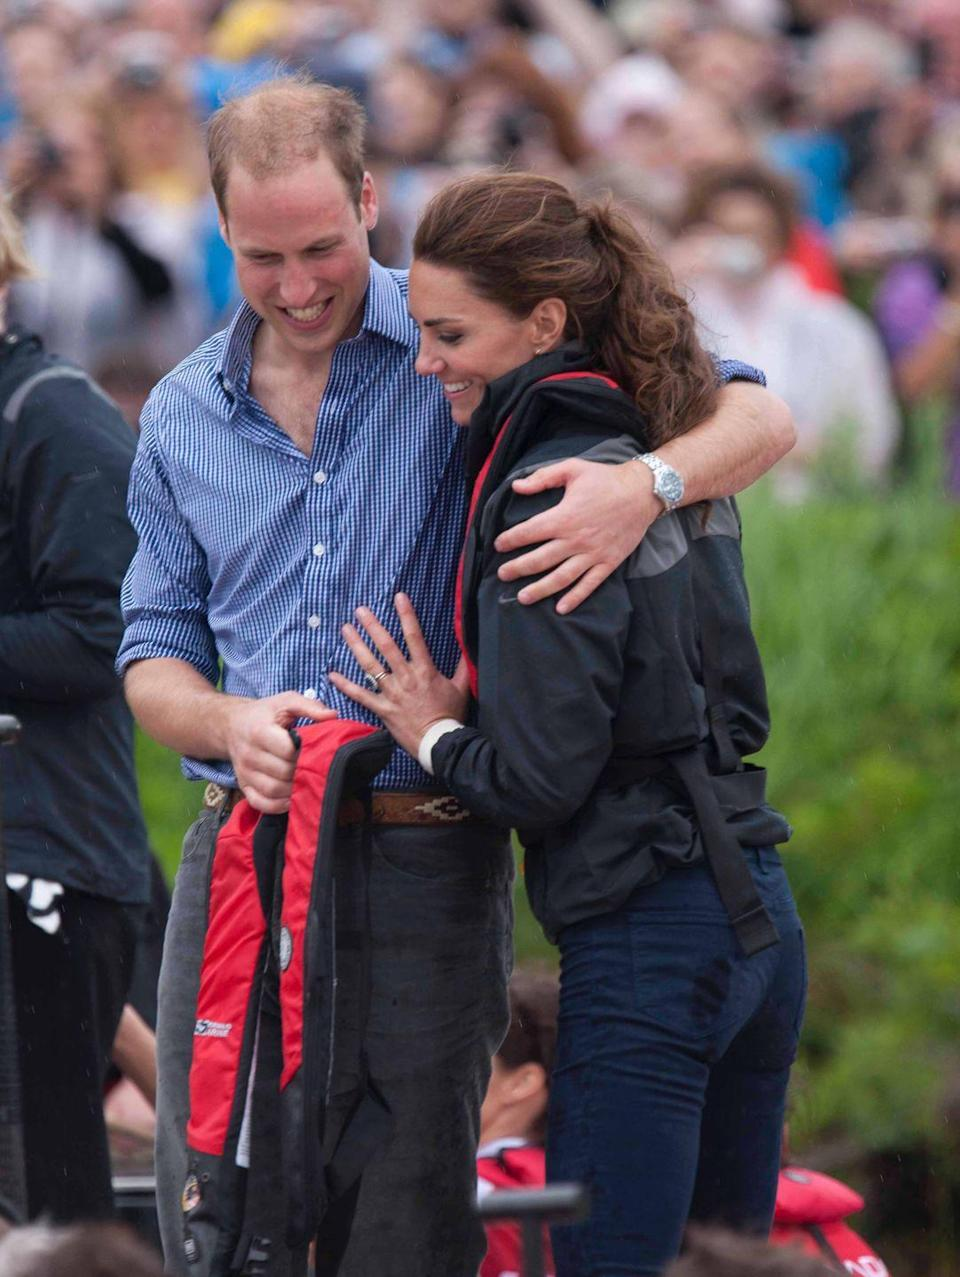 <p>The pair hugged it out after taking part in a dragon boat race at Dalvay-by-the-sea during the couple's North American Tour, July 2011.</p>